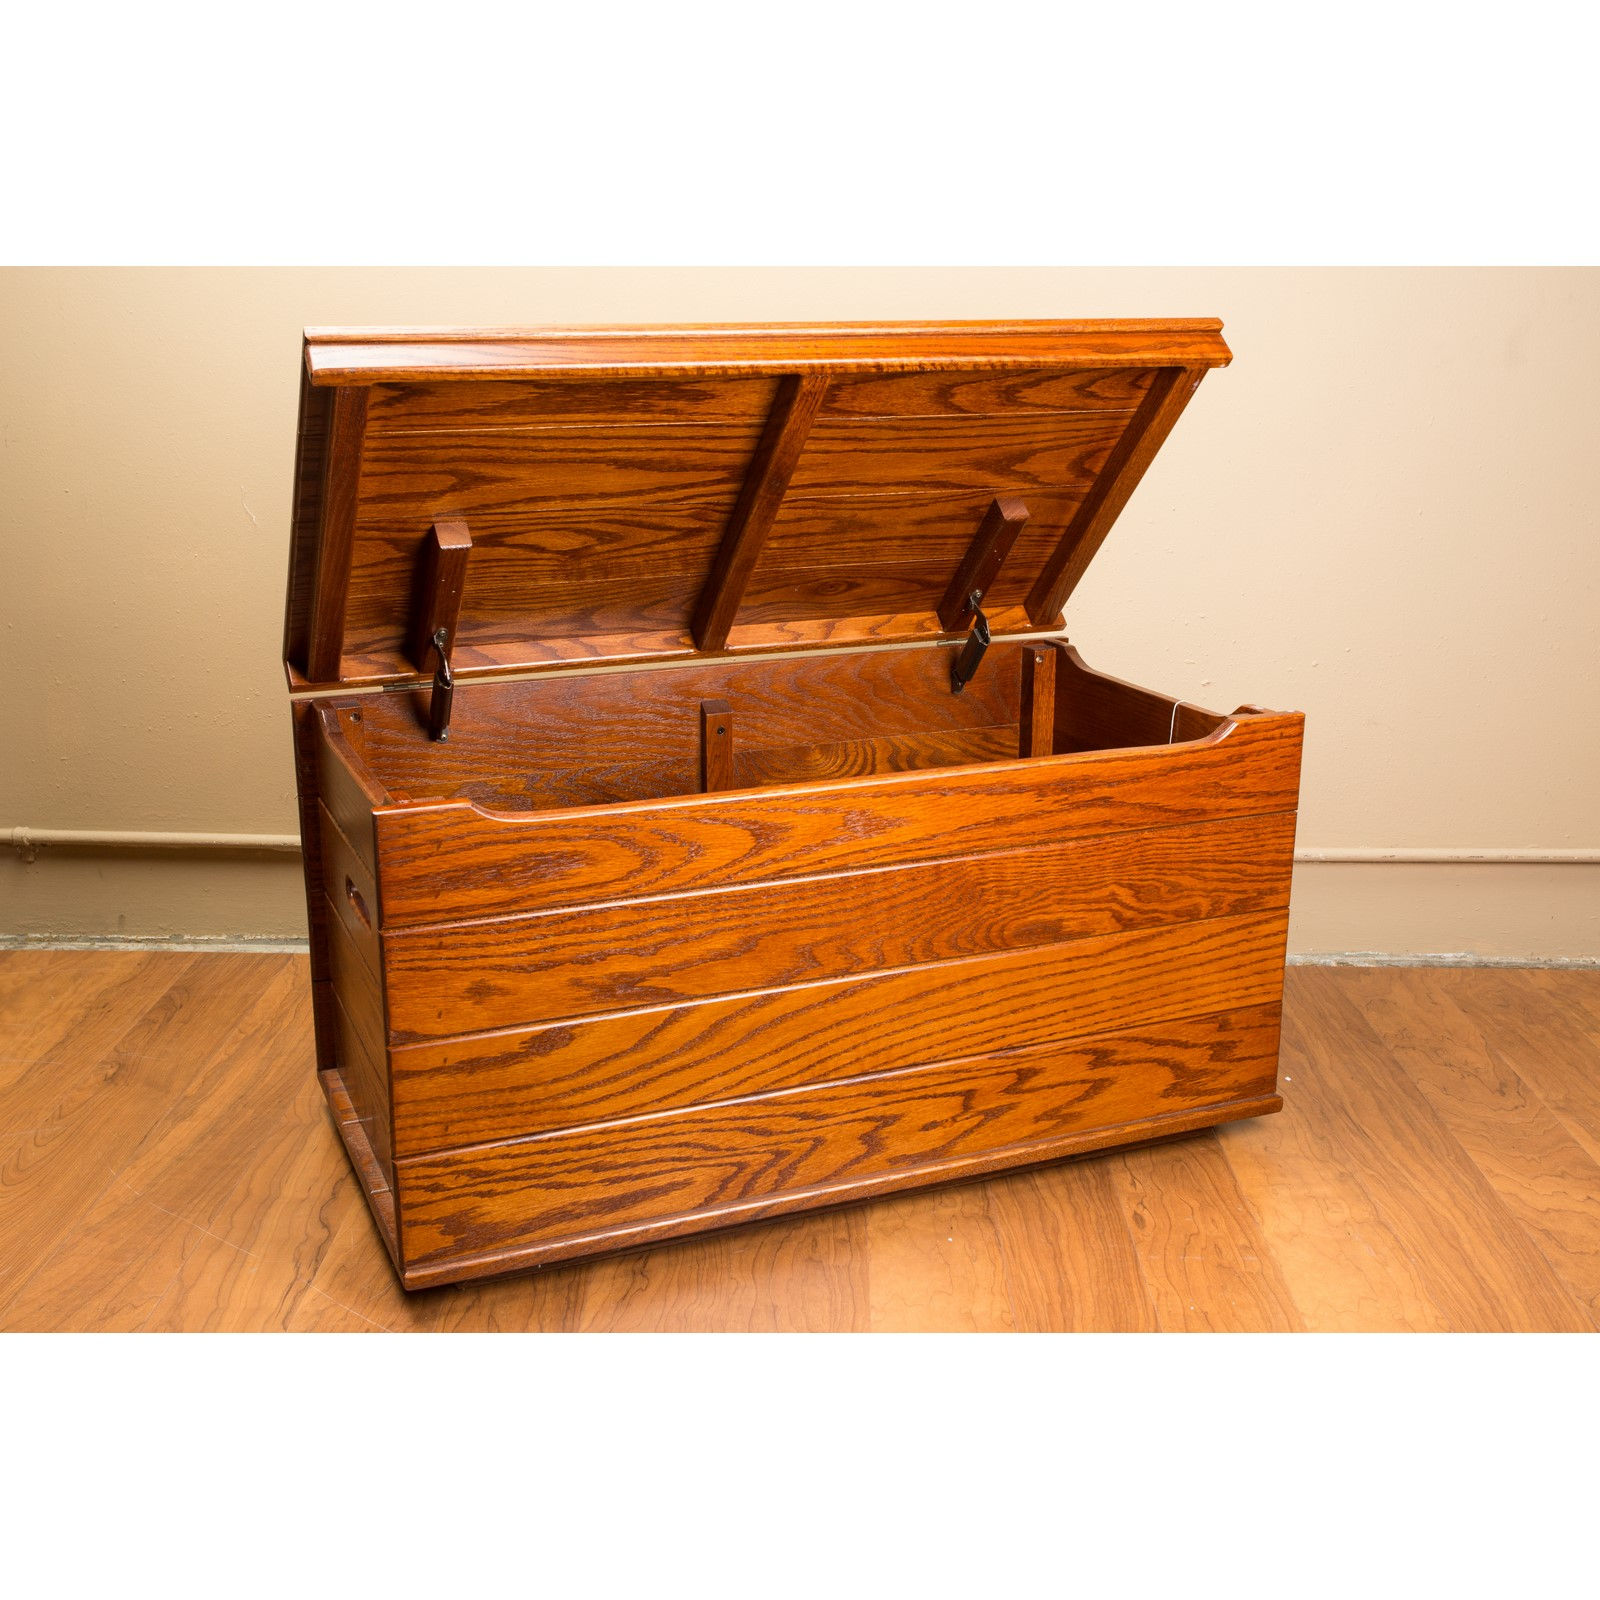 Wood Furniture Design Creative Wood Design Organizer Chest Stewart Roth Furniture